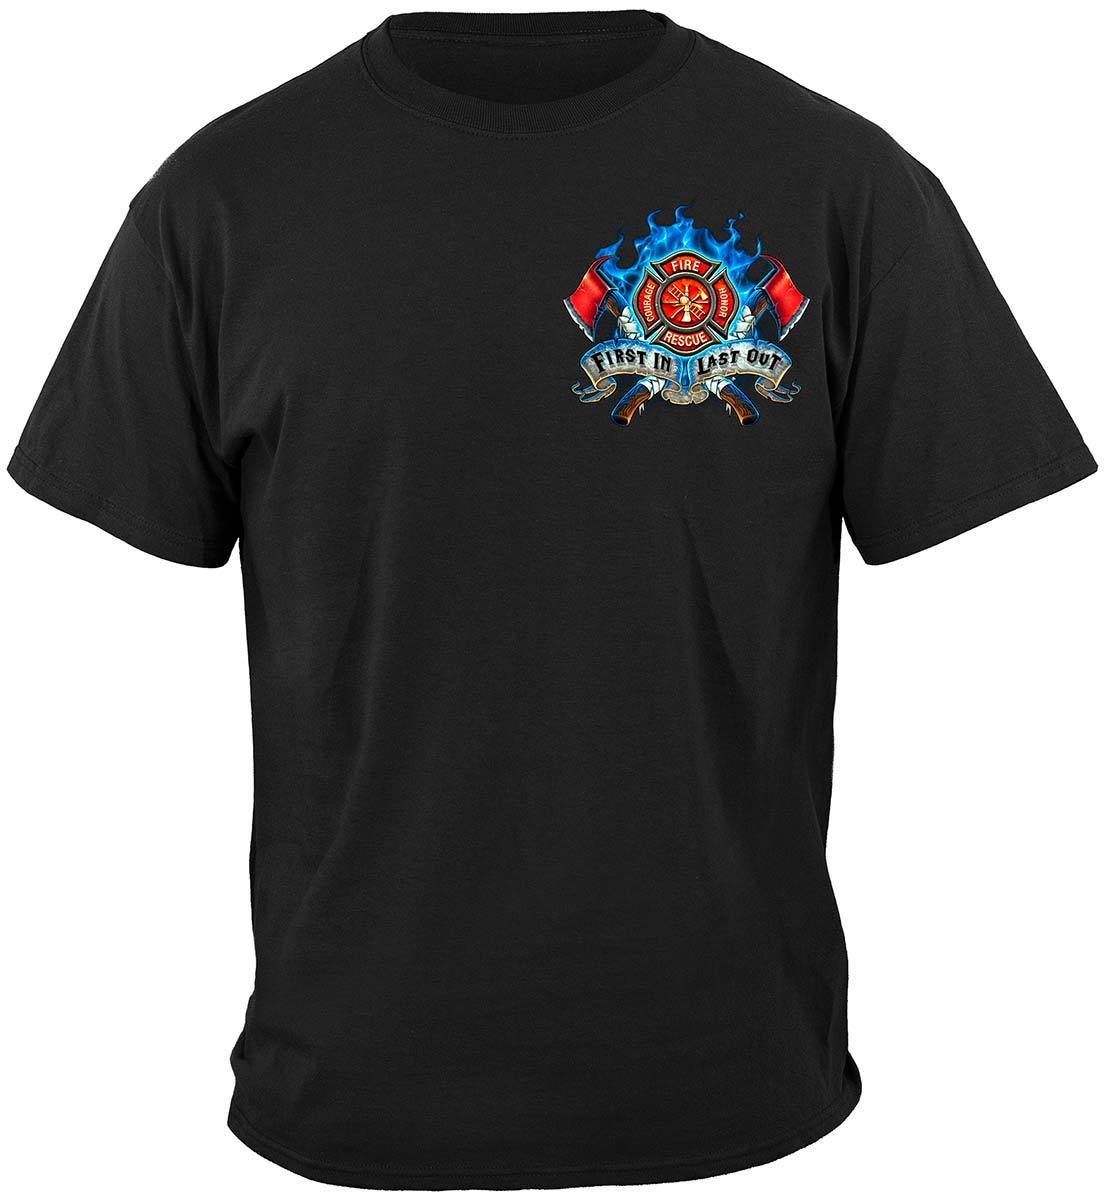 Firefighter Fire Dog First in Last Out Premium Long Sleeves